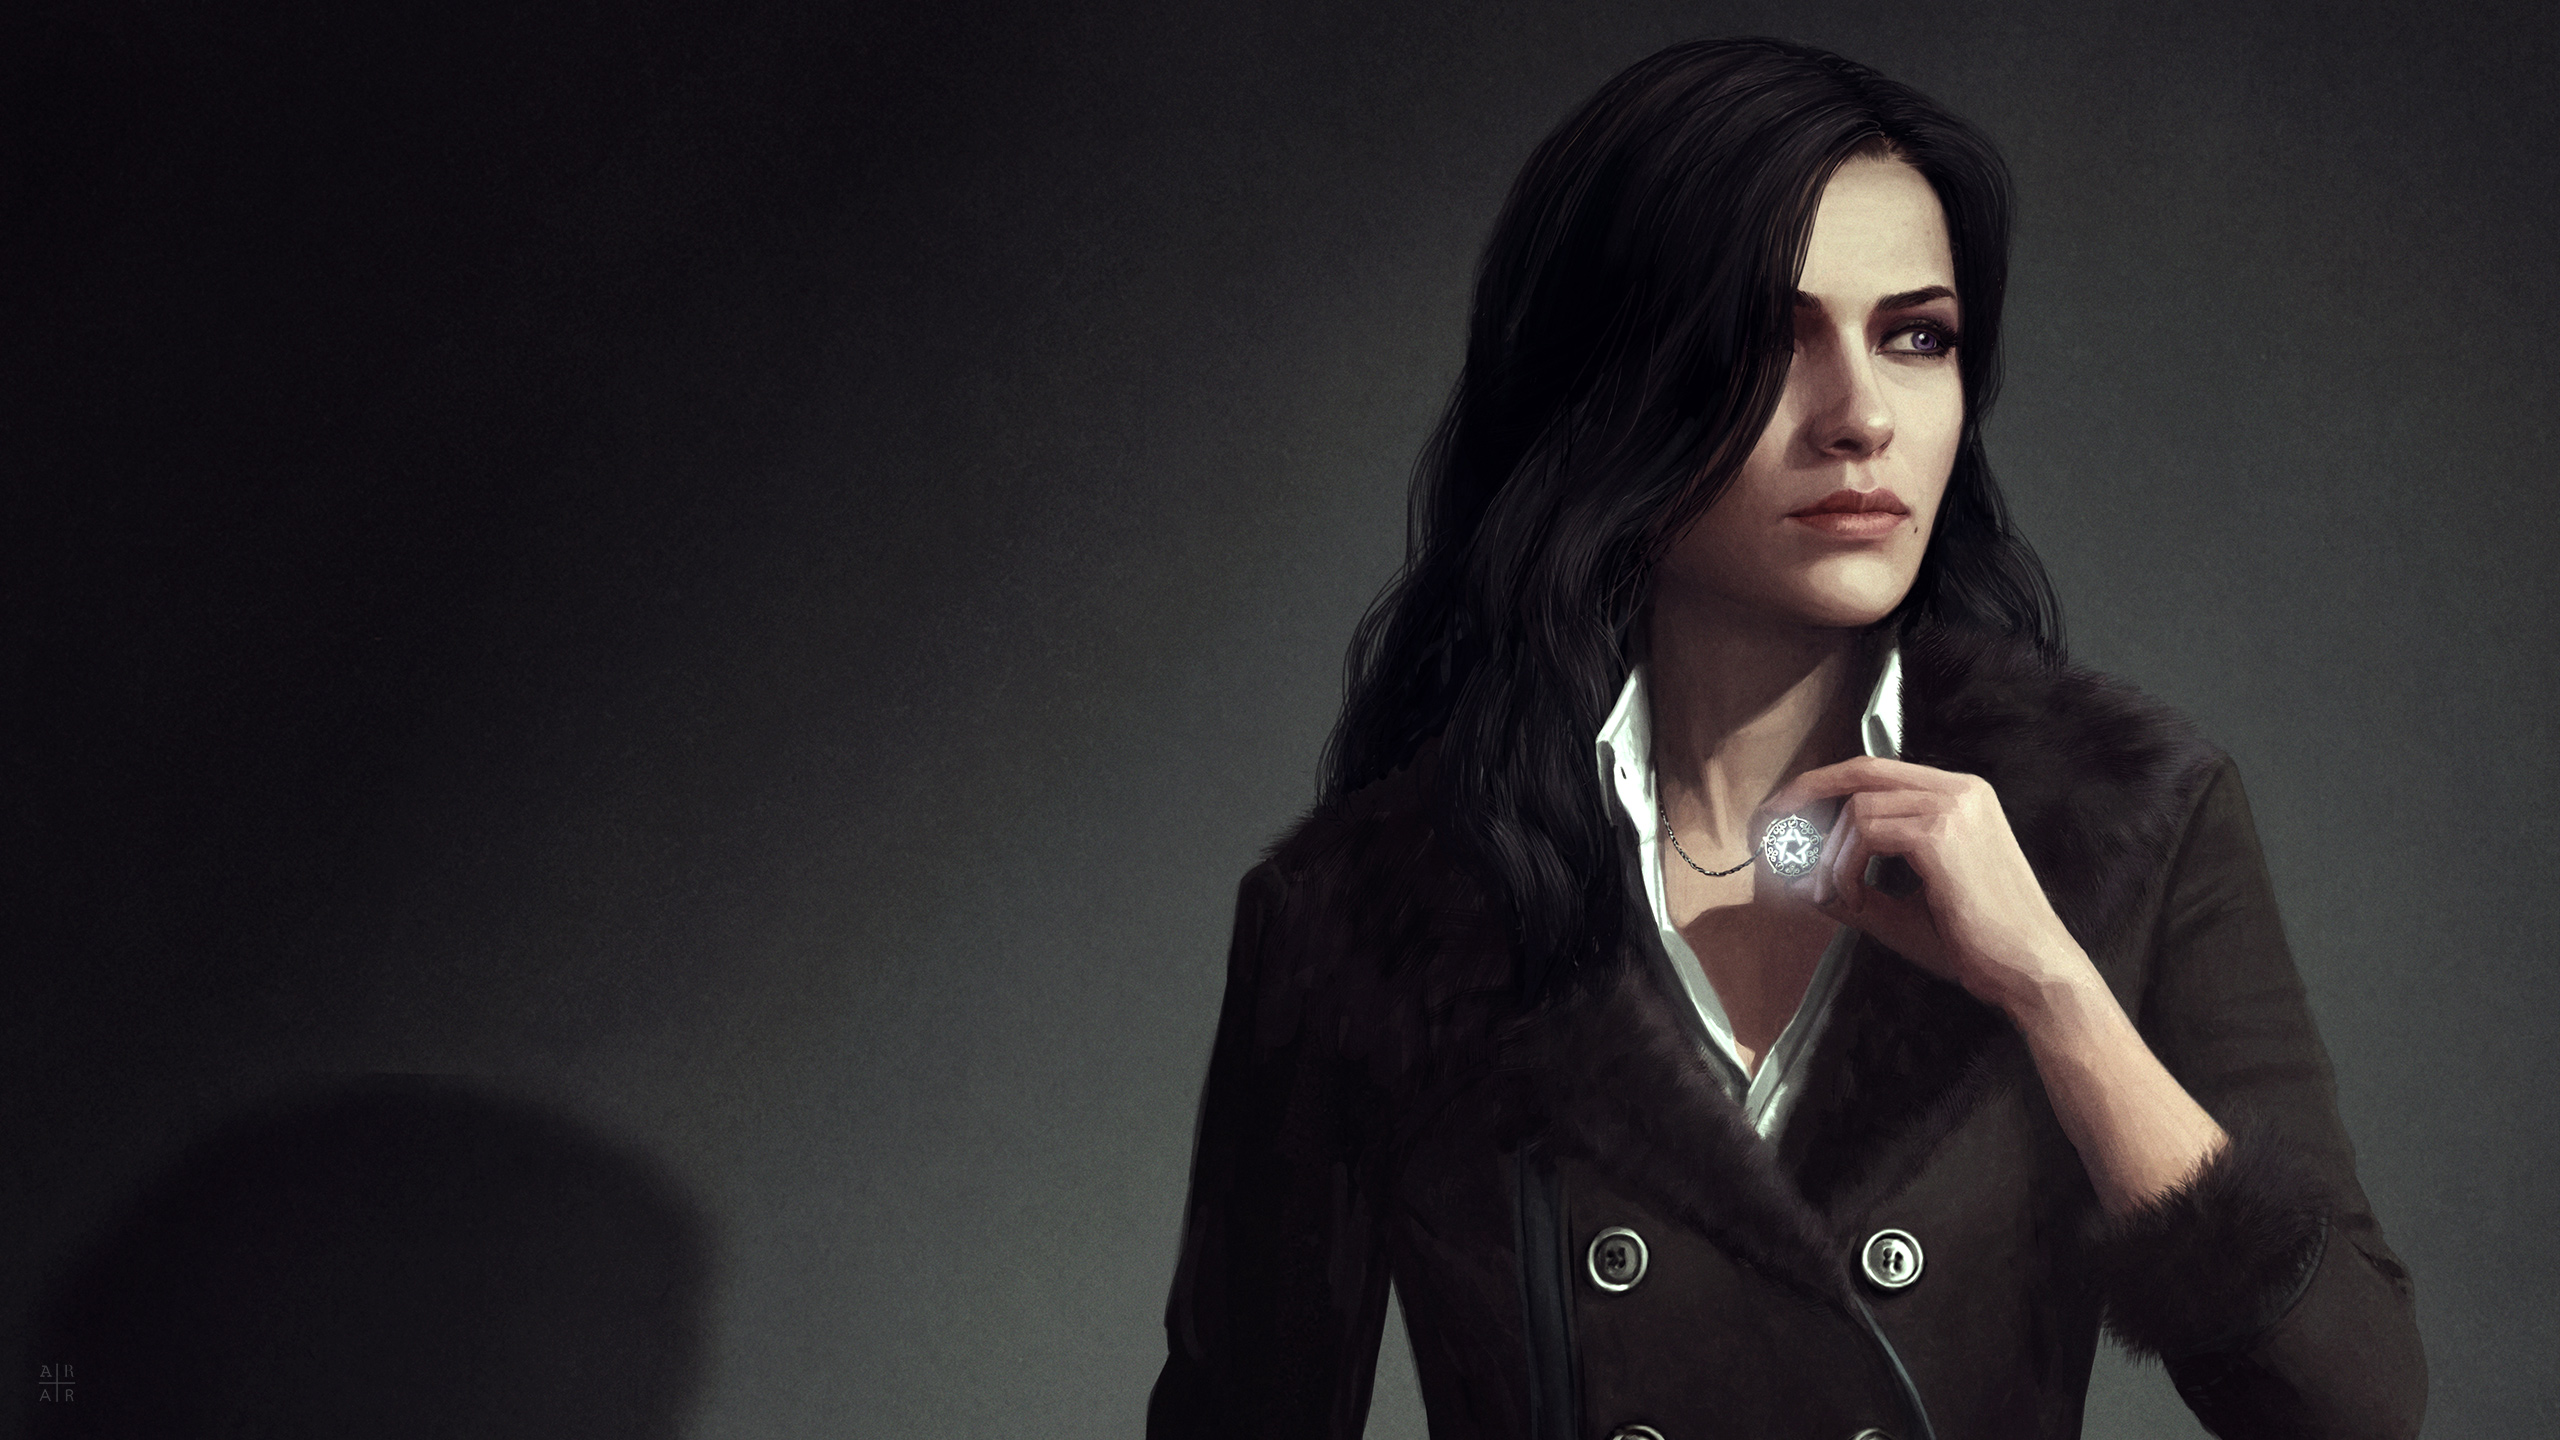 Yennefer Witcher 3 Hd Games 4k Wallpapers Images Backgrounds